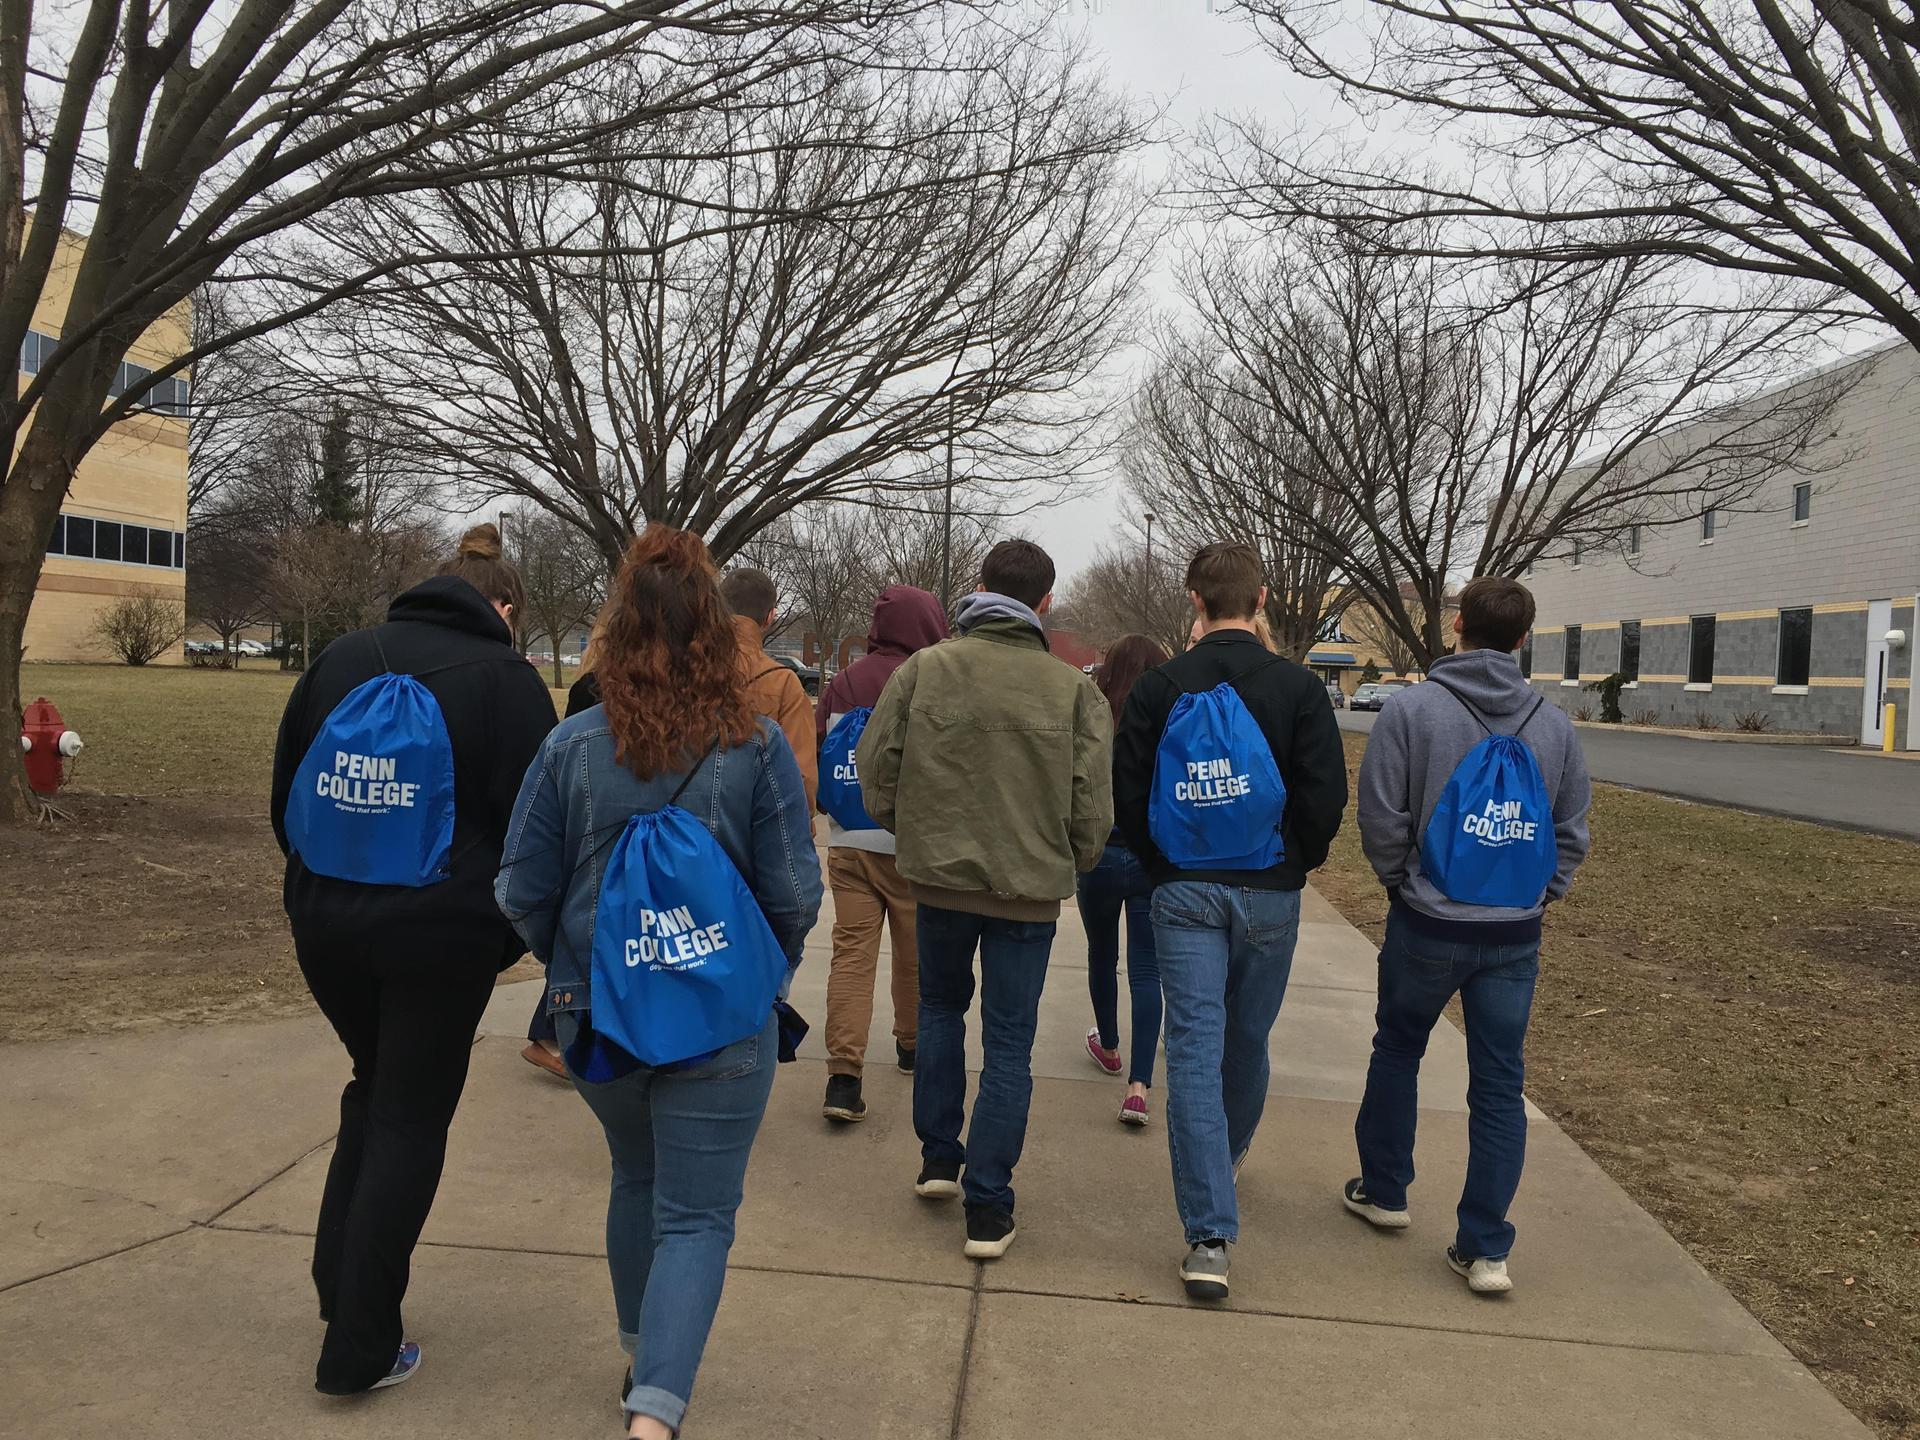 students on a walking tour of a college